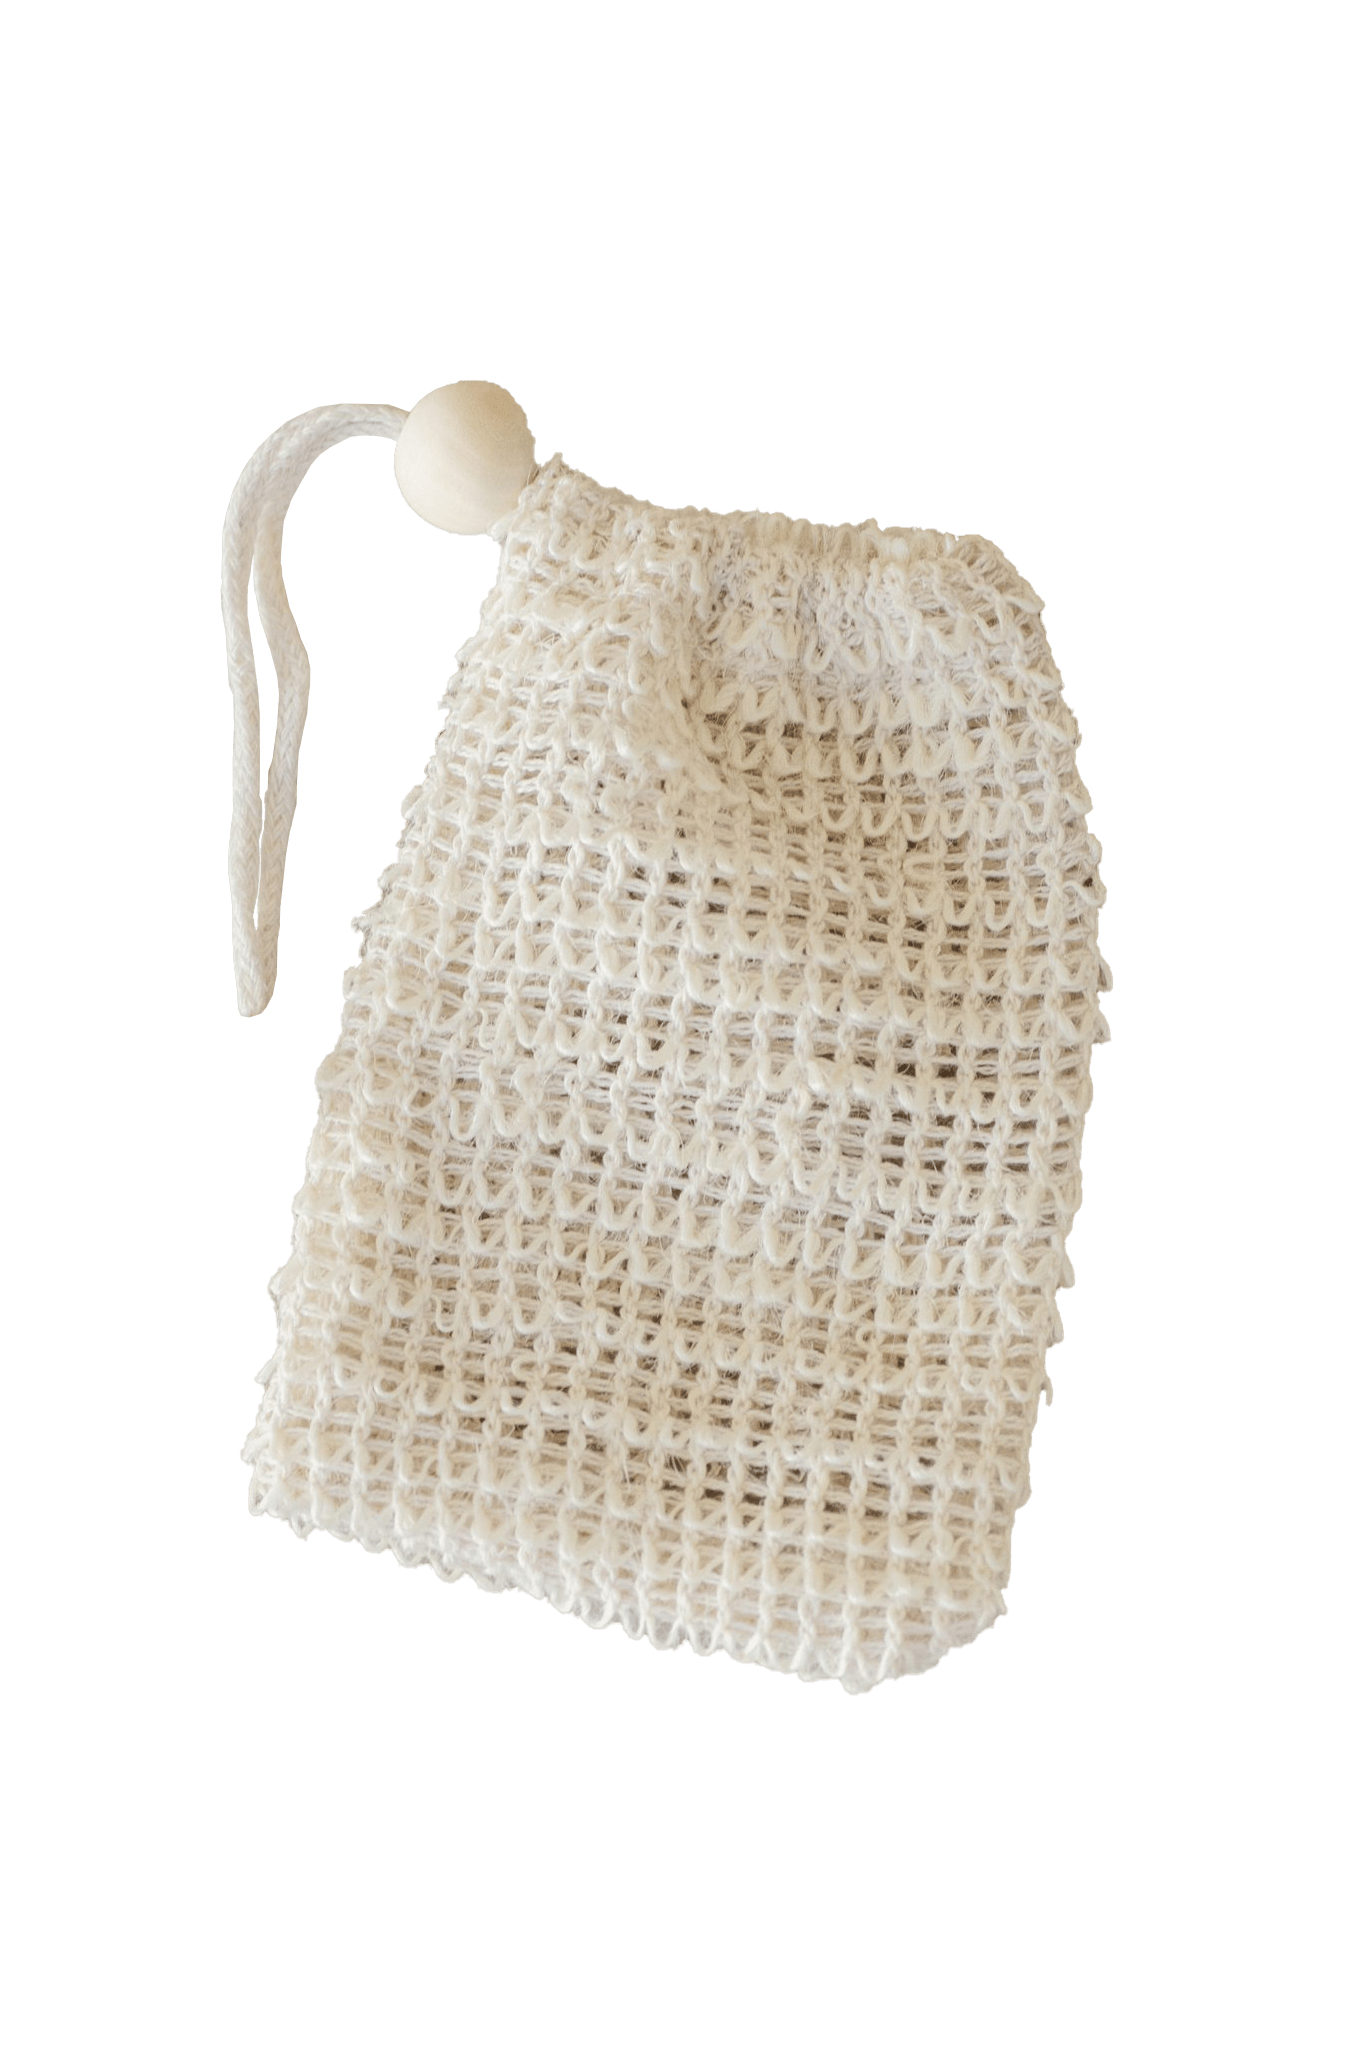 Agave Woven Soap Bag - Exfoliating Scrubber - Naturally Anti-Microbial Hypoallergenic Sustainable Eco-Friendly Cork